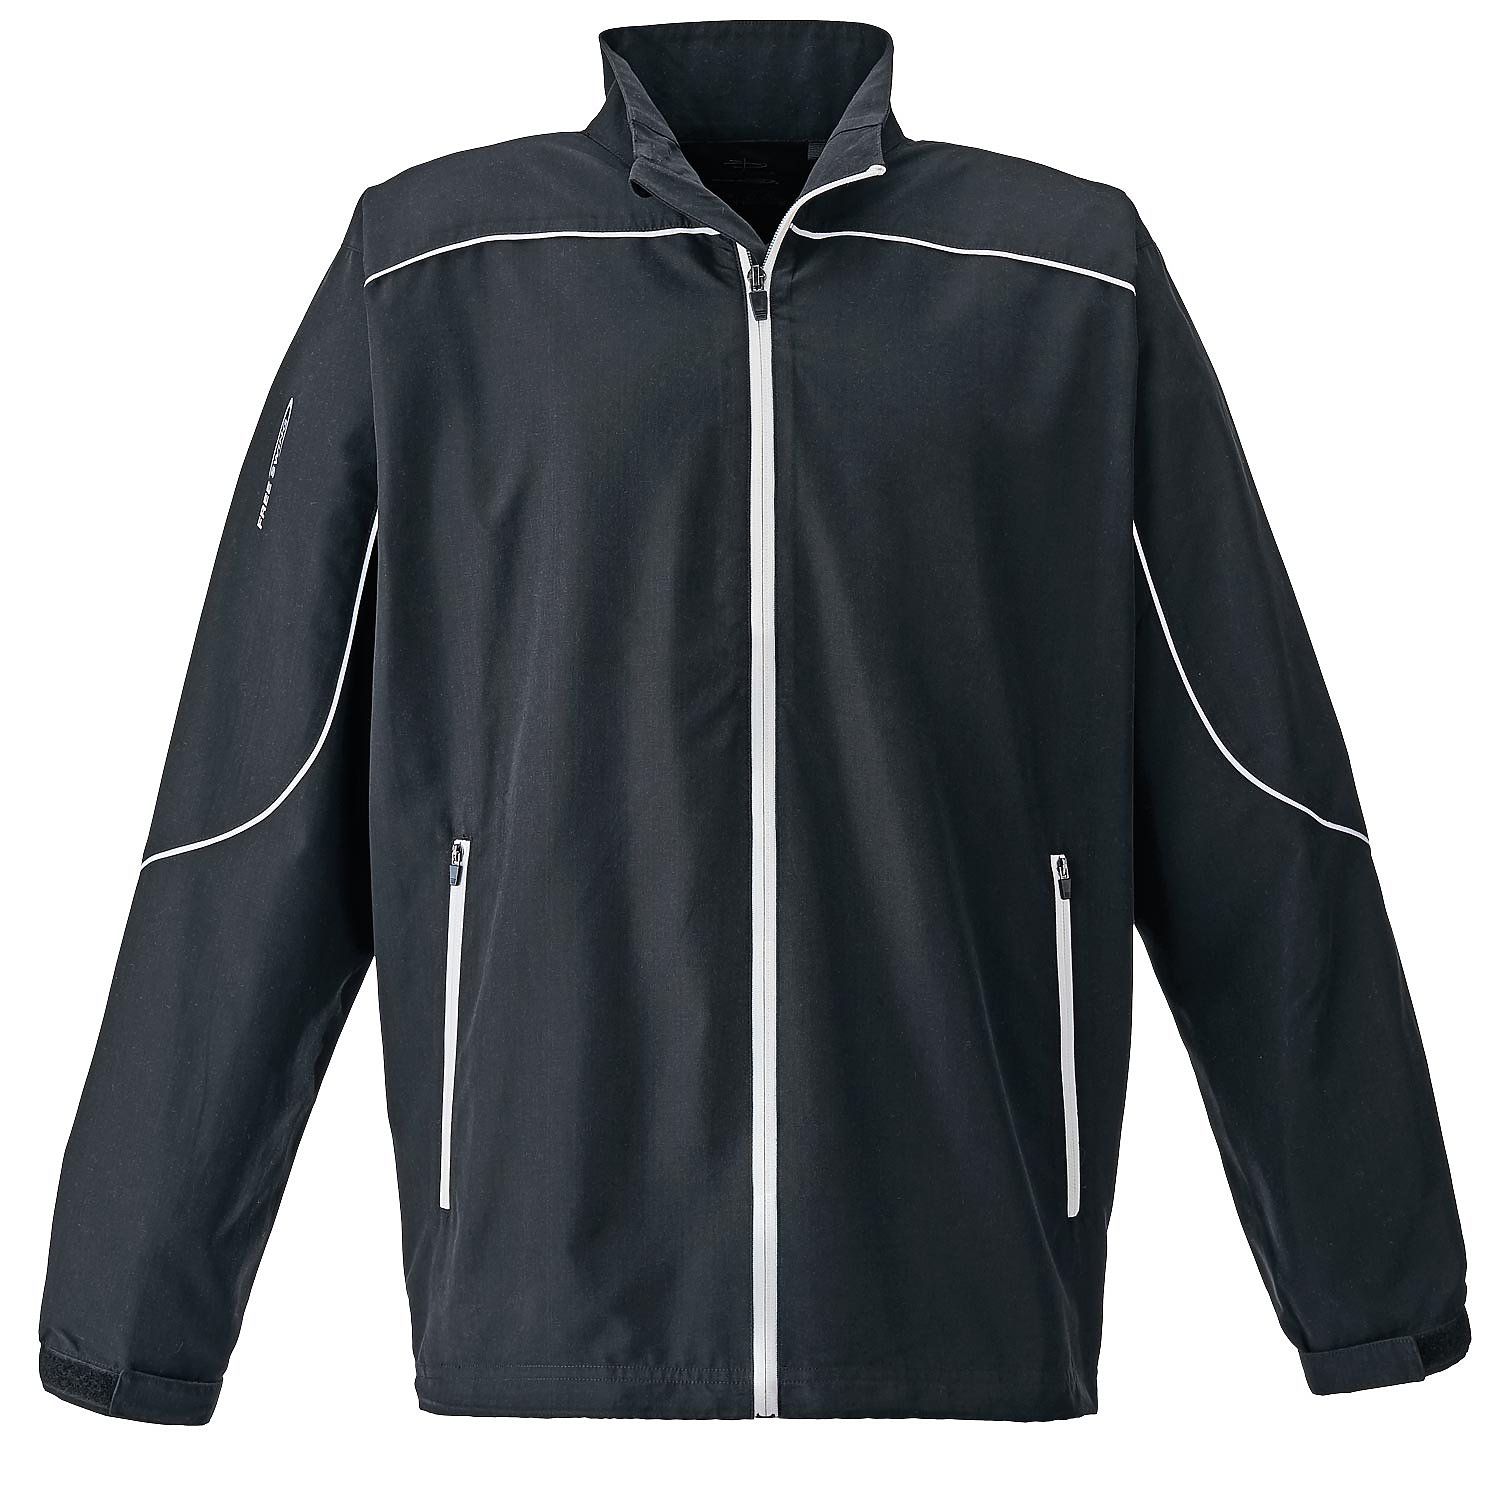 Page & Tuttle P1988 - Men's Piped Full-Zip Long Sleeve ...